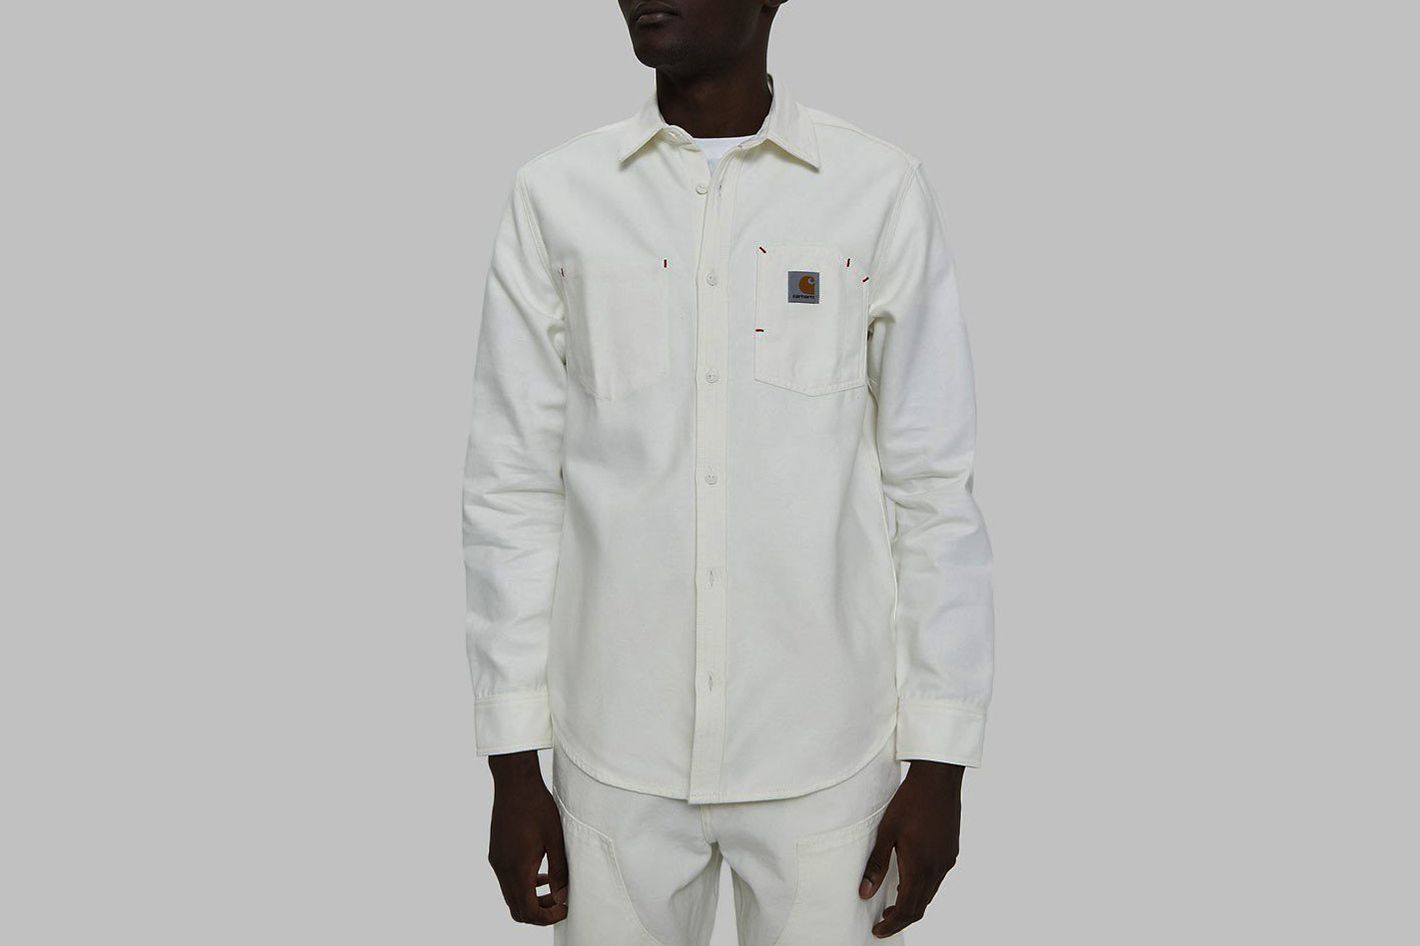 Carhartt WIP Tony Button Up Shirt in Wax